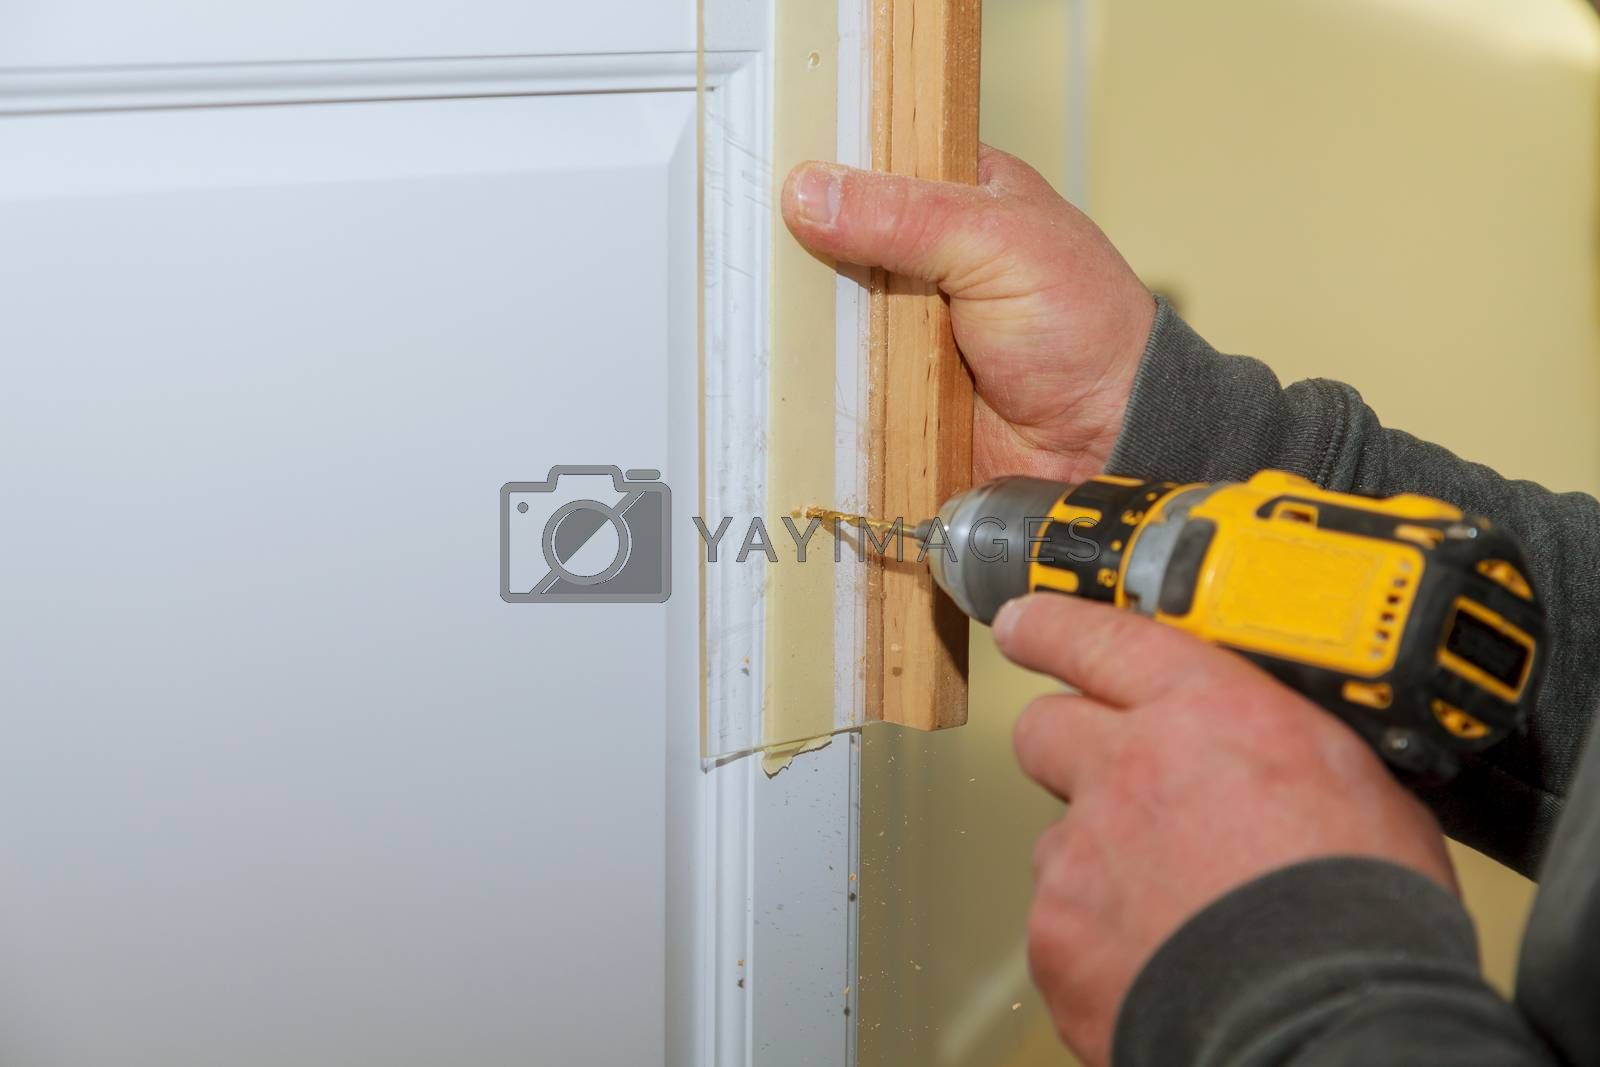 Carpenter working on new kitchen drilling in cabinet a new handle